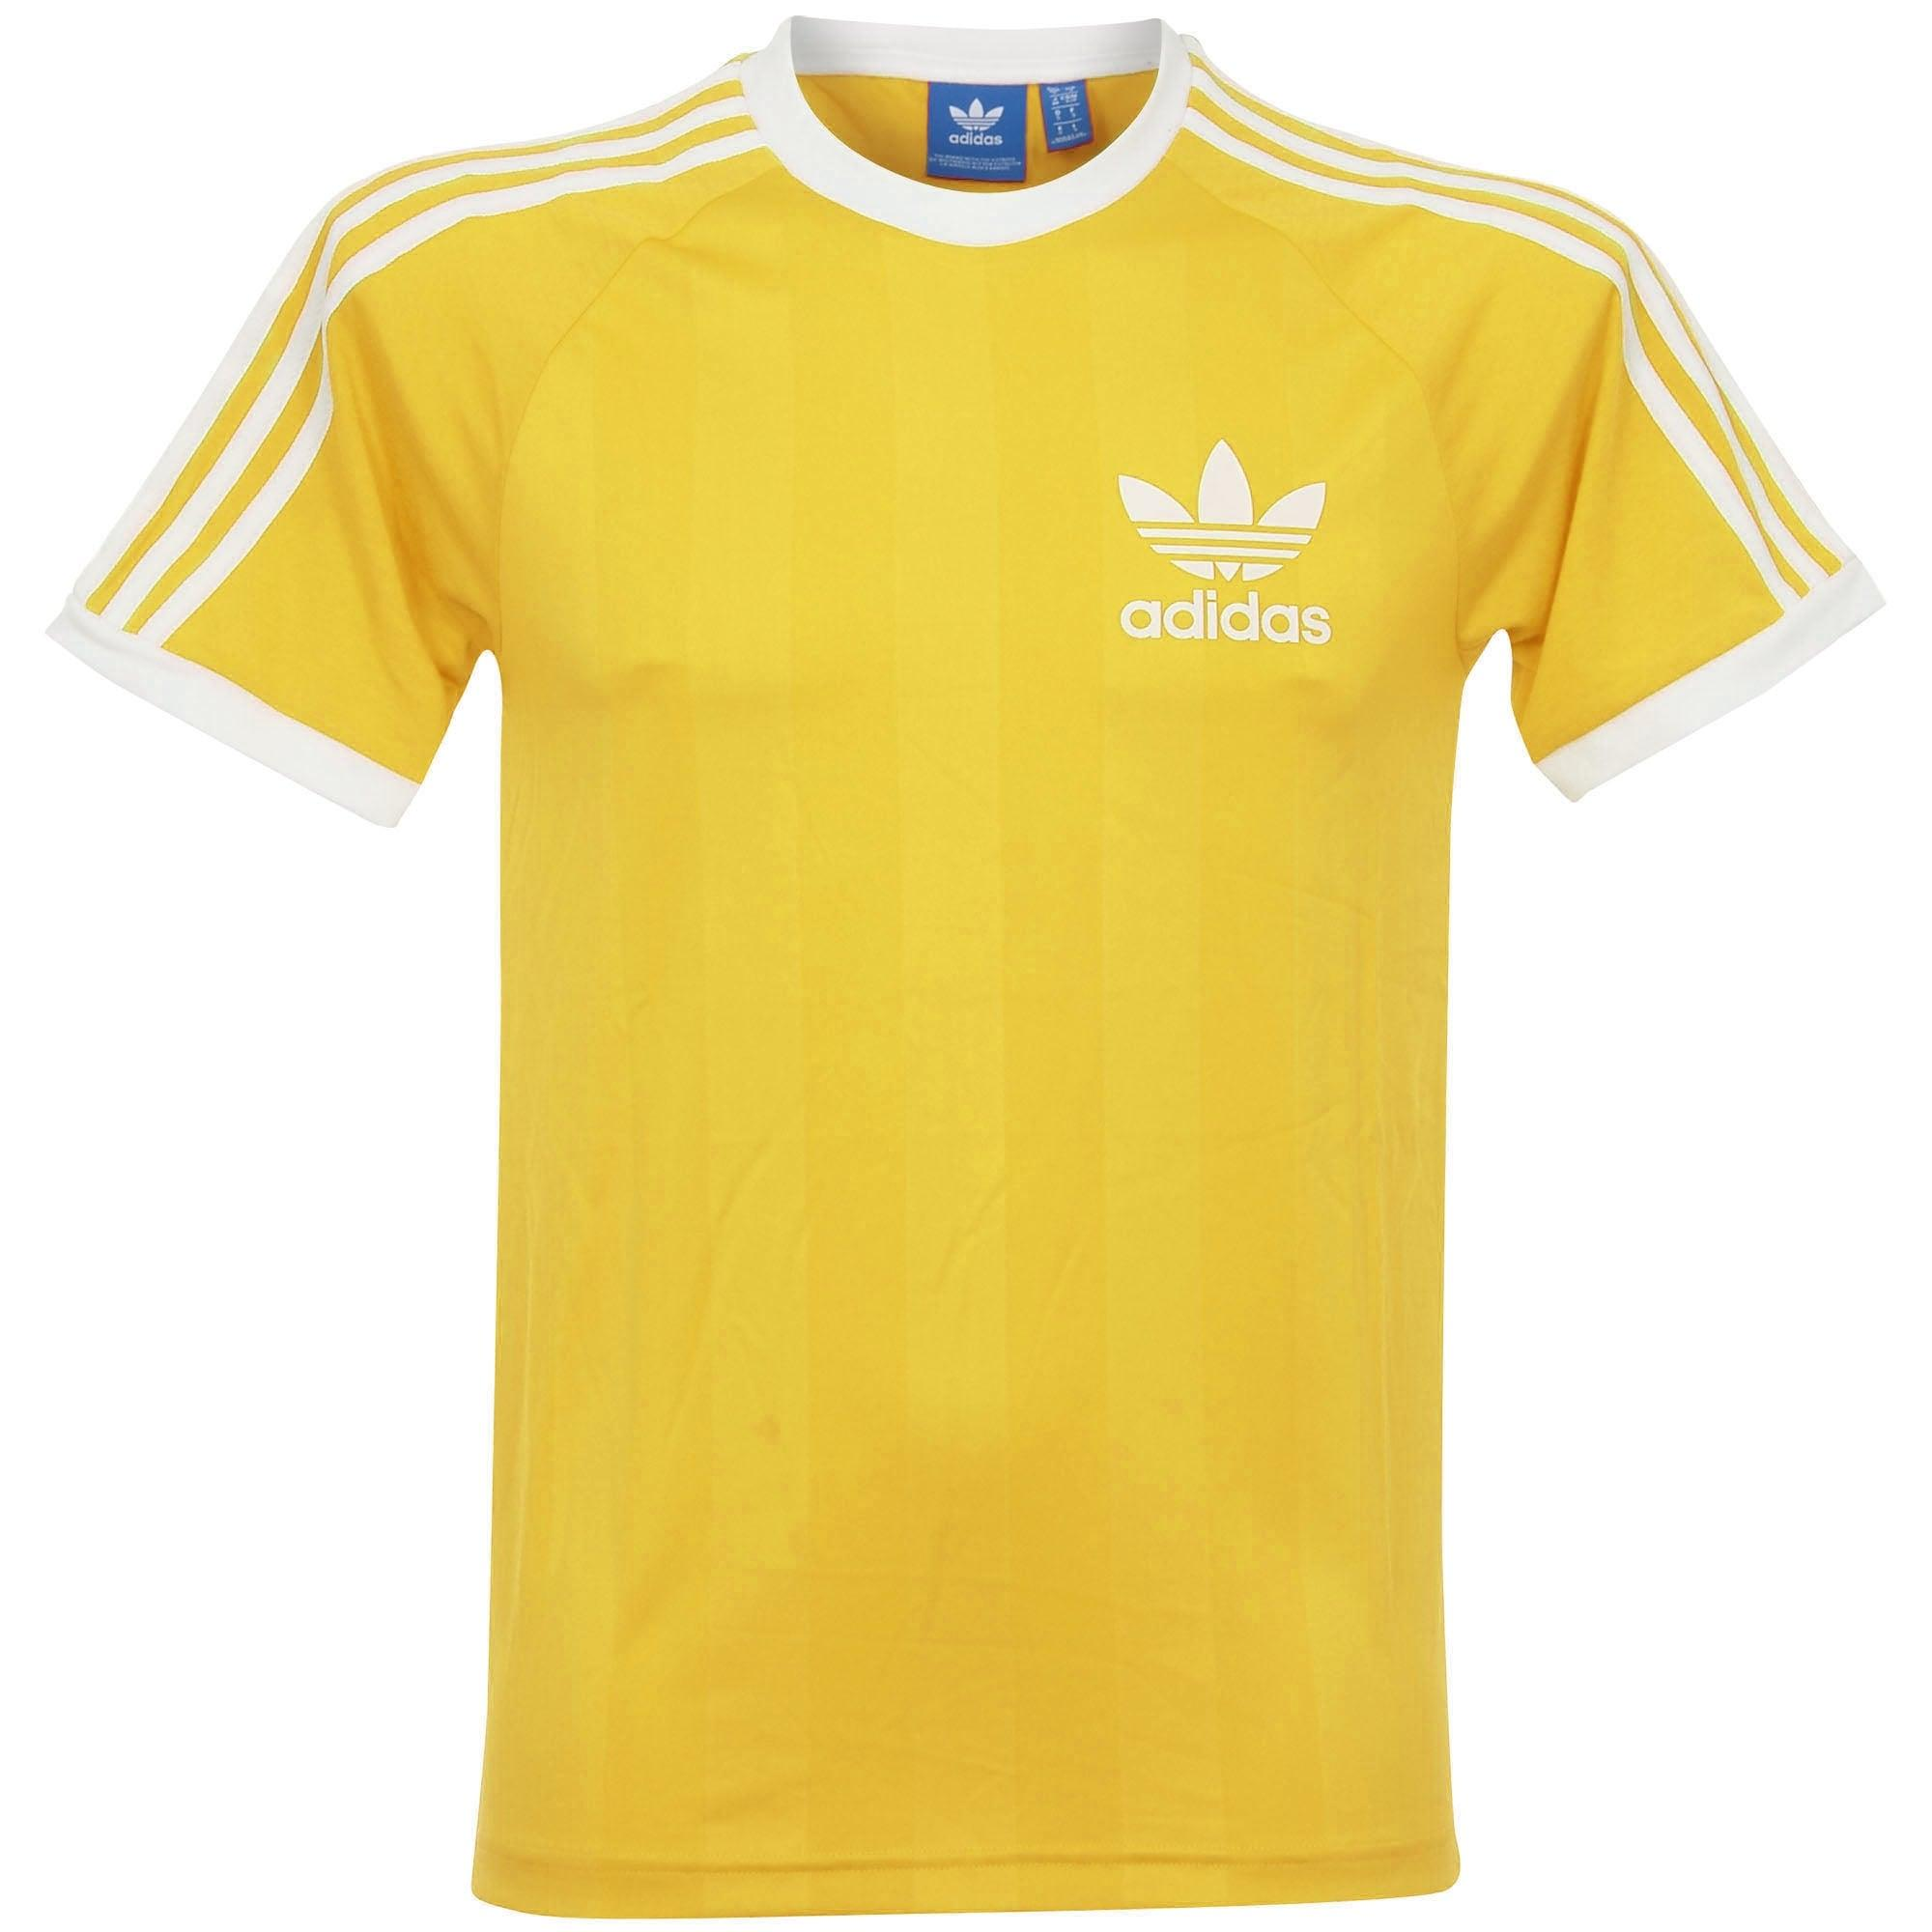 Lyst adidas originals adidas clfn tee yellow t shirt for Adidas lotus t shirt